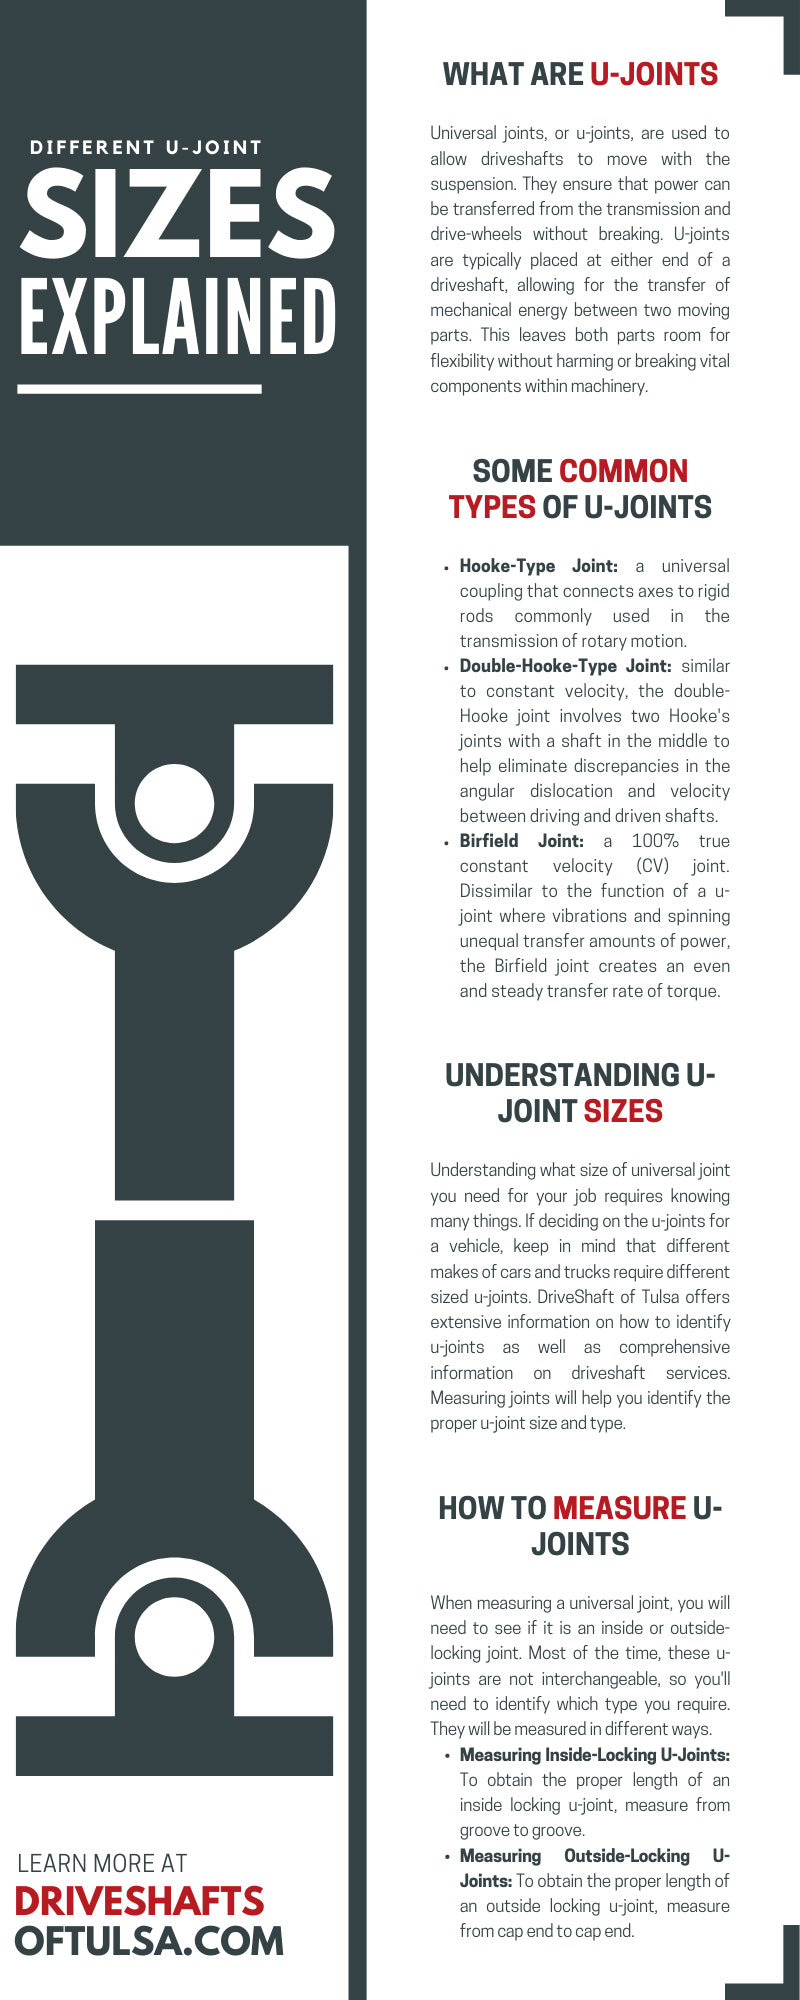 Different U-Joint Sizes Explained